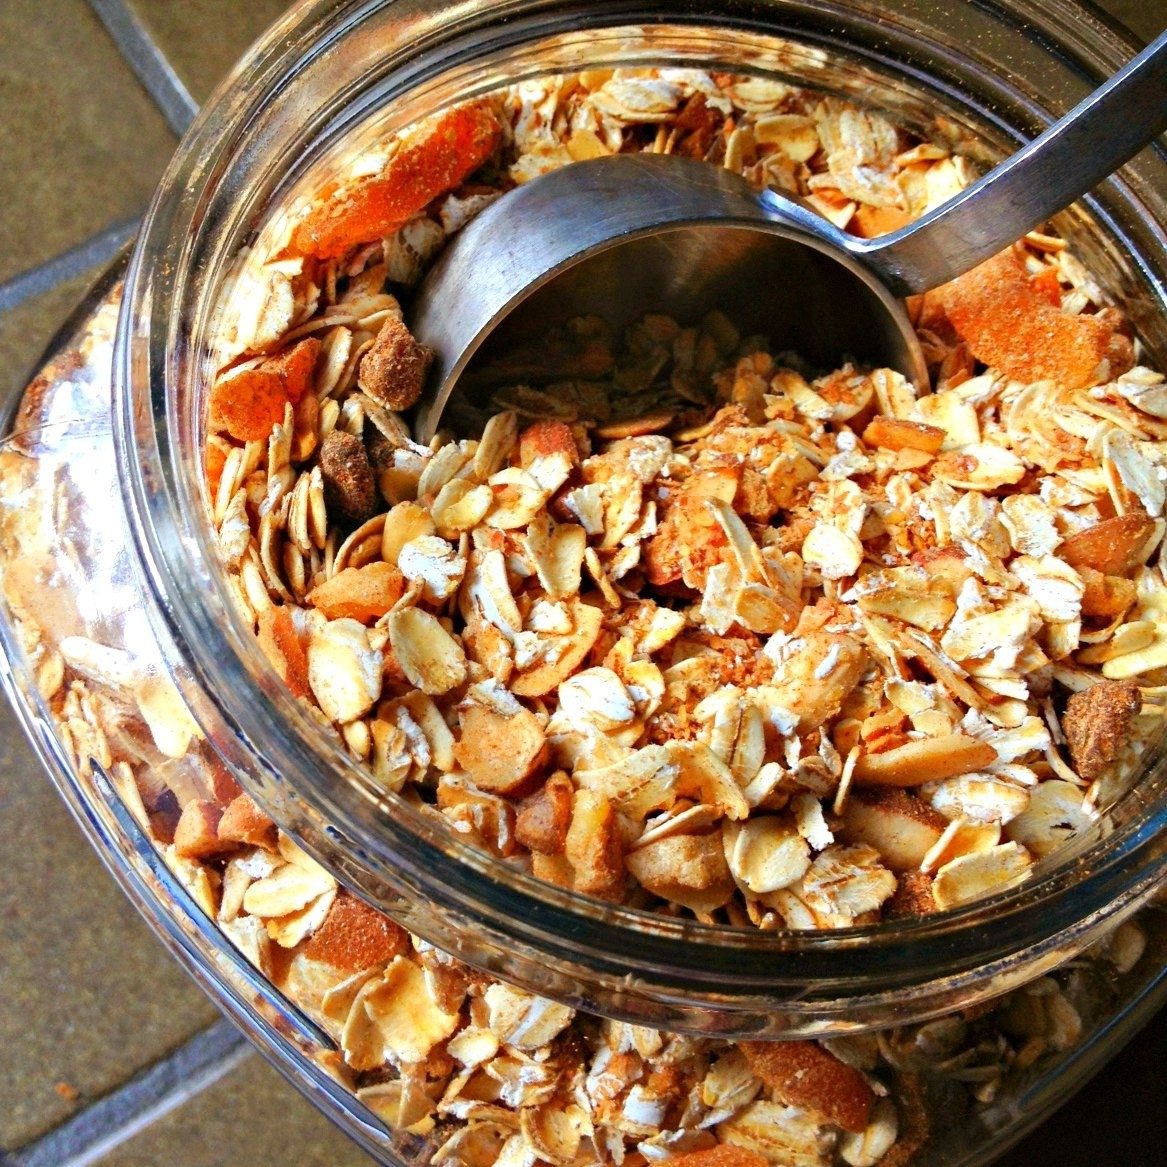 Make your own Instant Oatmeal Mix - The Lemon Bowl